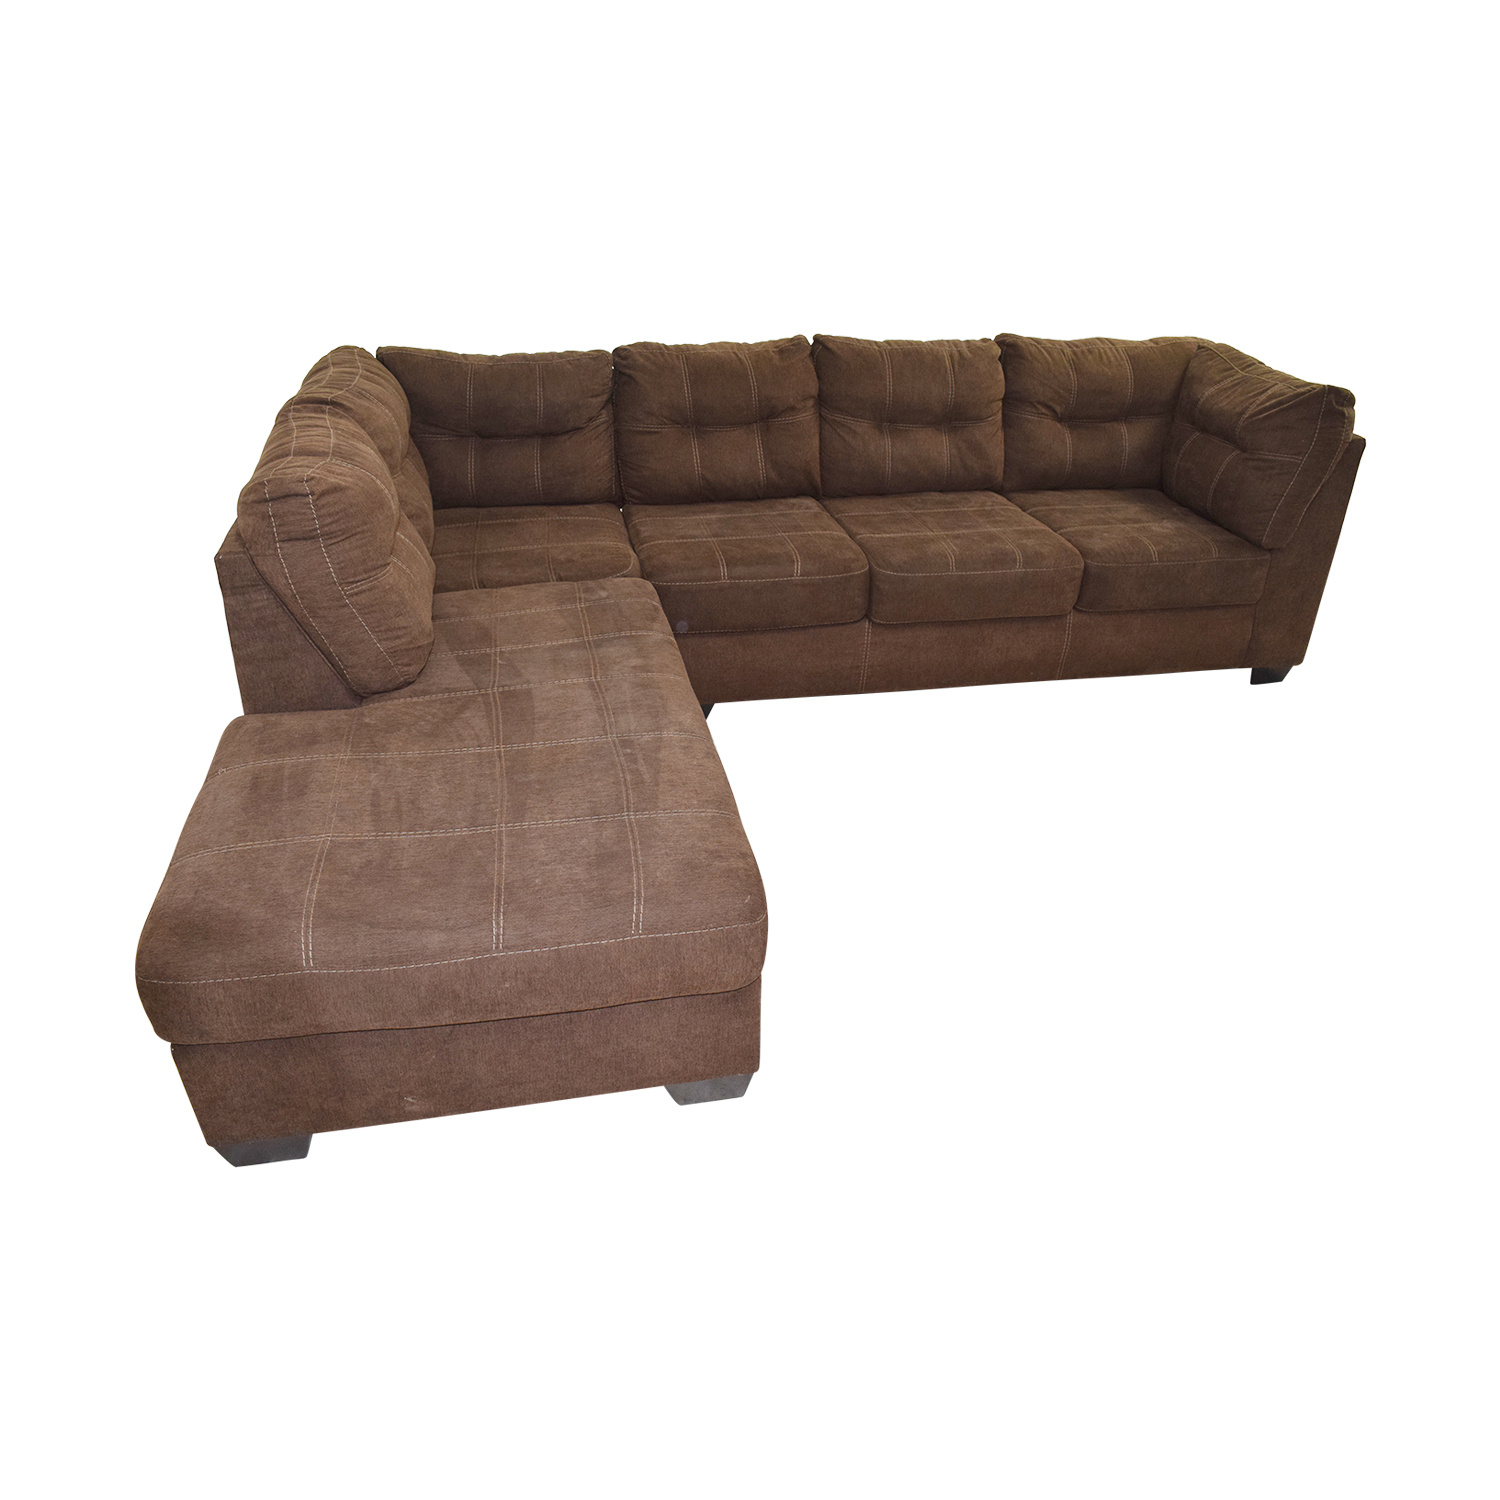 64 off brown l shaped chaise sectional sofa sofas for Brown leather chaise end sofa